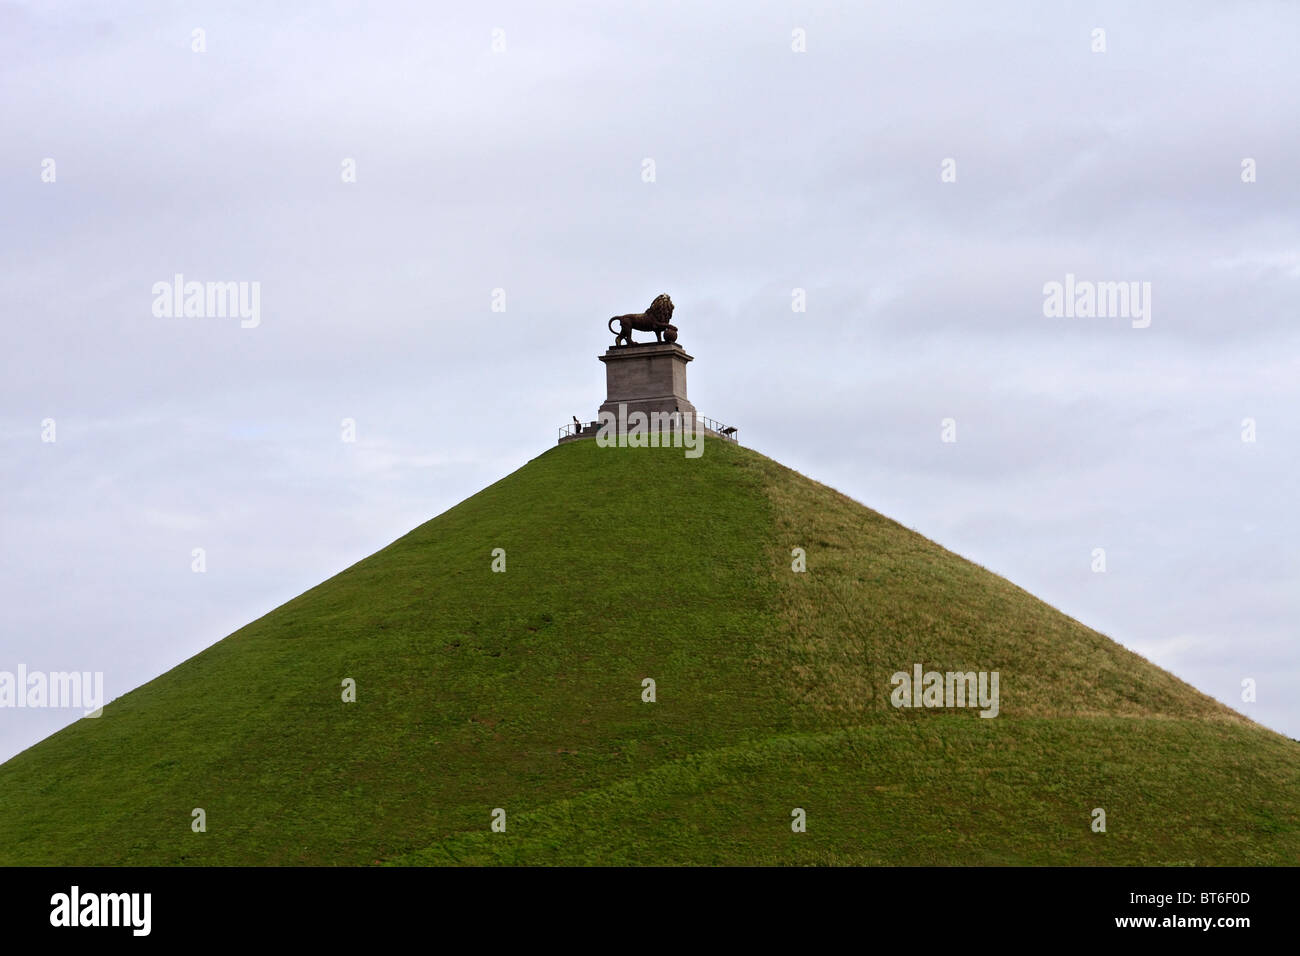 The Lion's Mound or Butte du Lion is a large conical artificial hill on the battlefield of Waterloo Belgium, - Stock Image